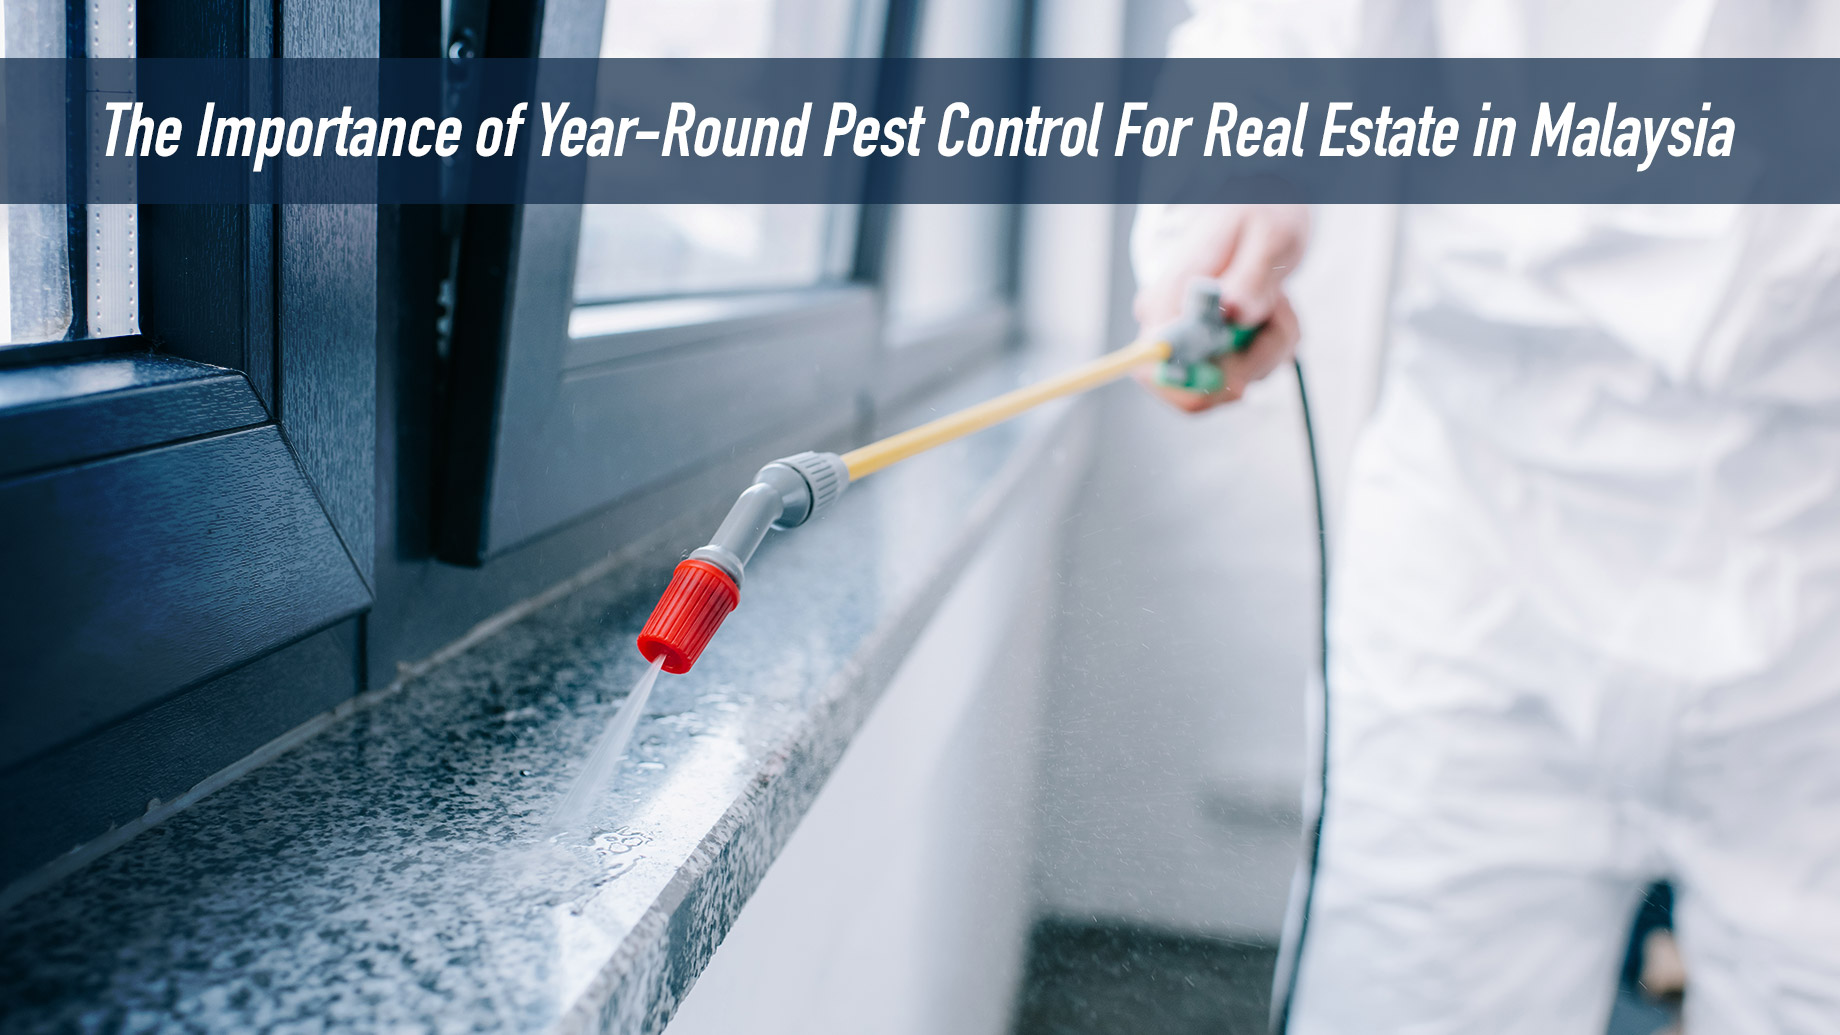 The Importance of Year-Round Pest Control For Real Estate in Malaysia